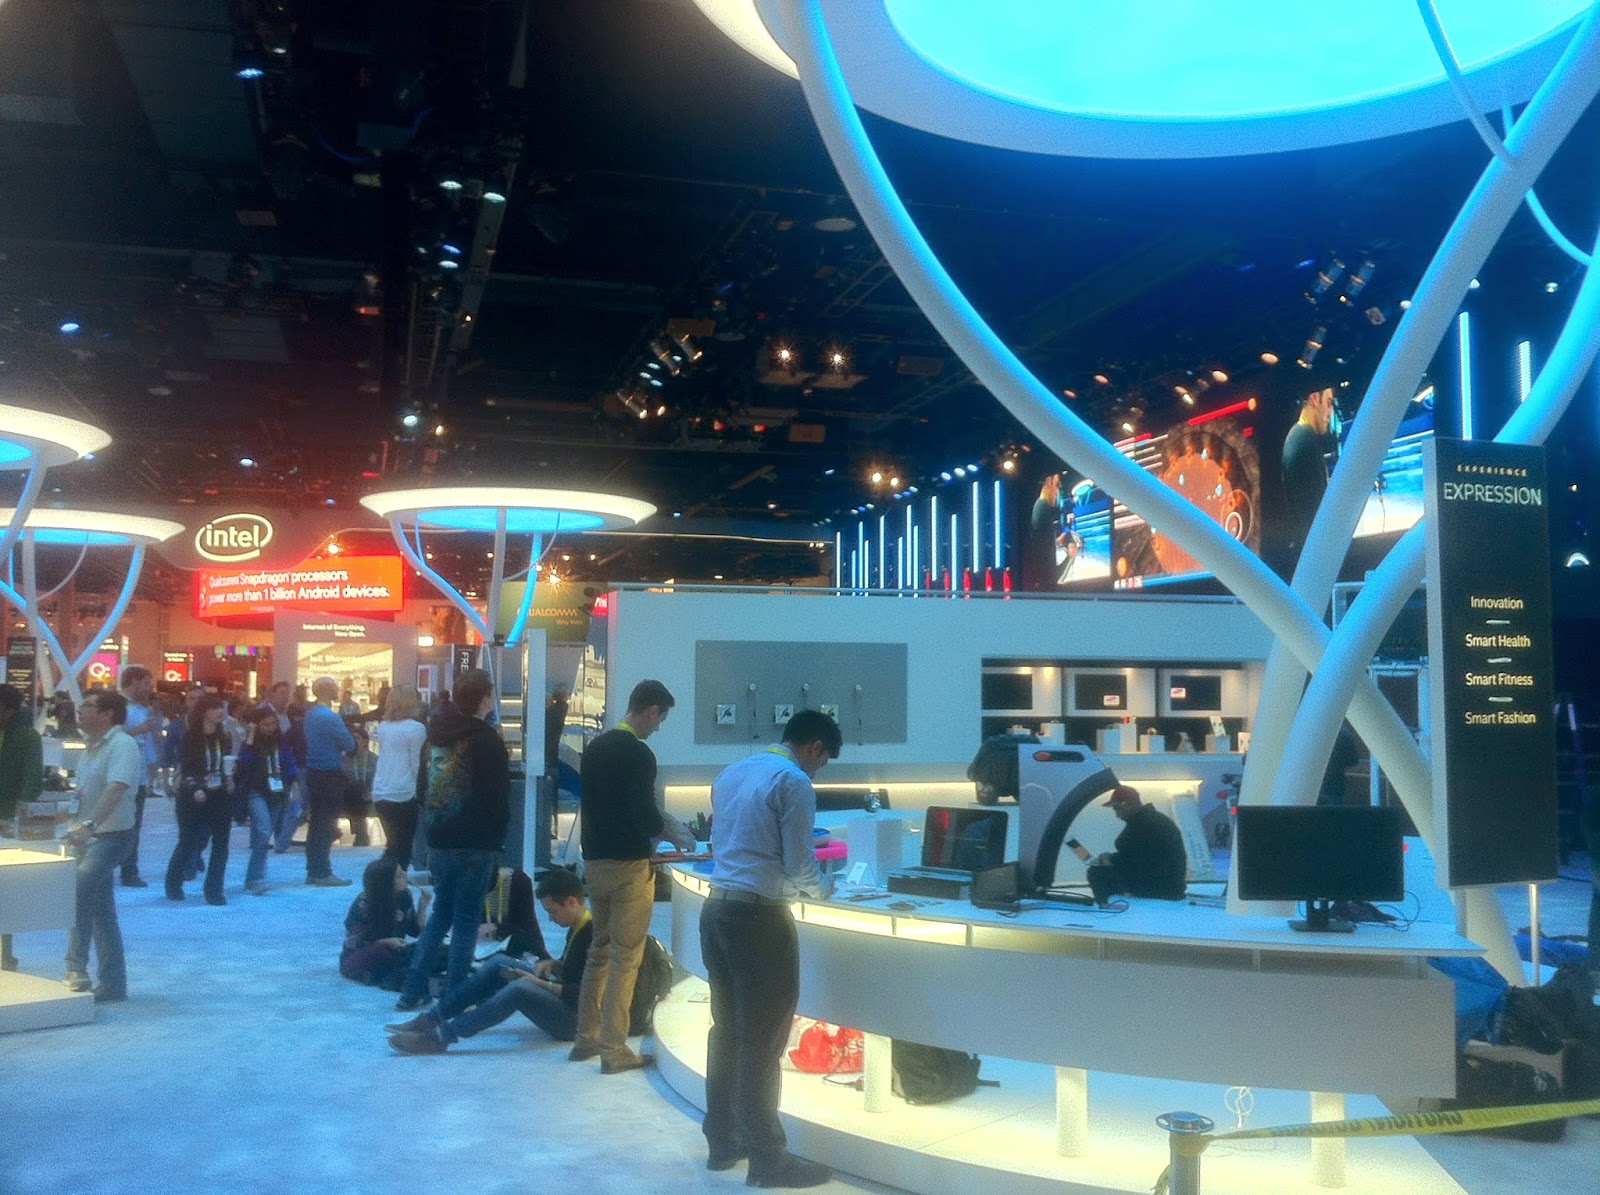 rap heal arts engineering babybe at the ces las vegas on the intel both. Black Bedroom Furniture Sets. Home Design Ideas